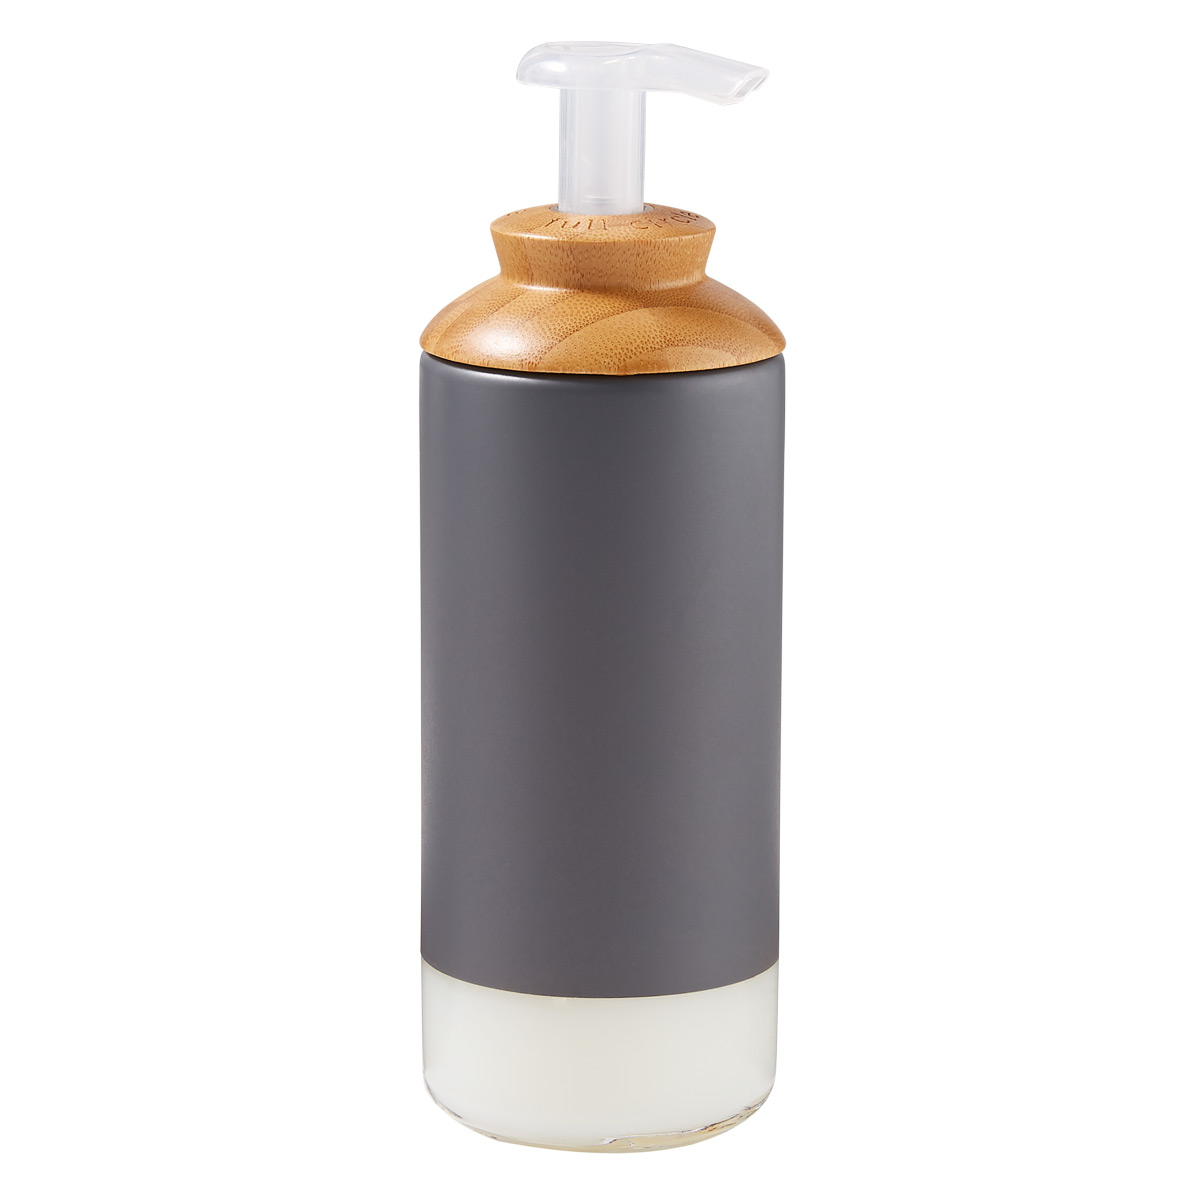 Full Circle 12 oz. Bamboo Soap Dispenser